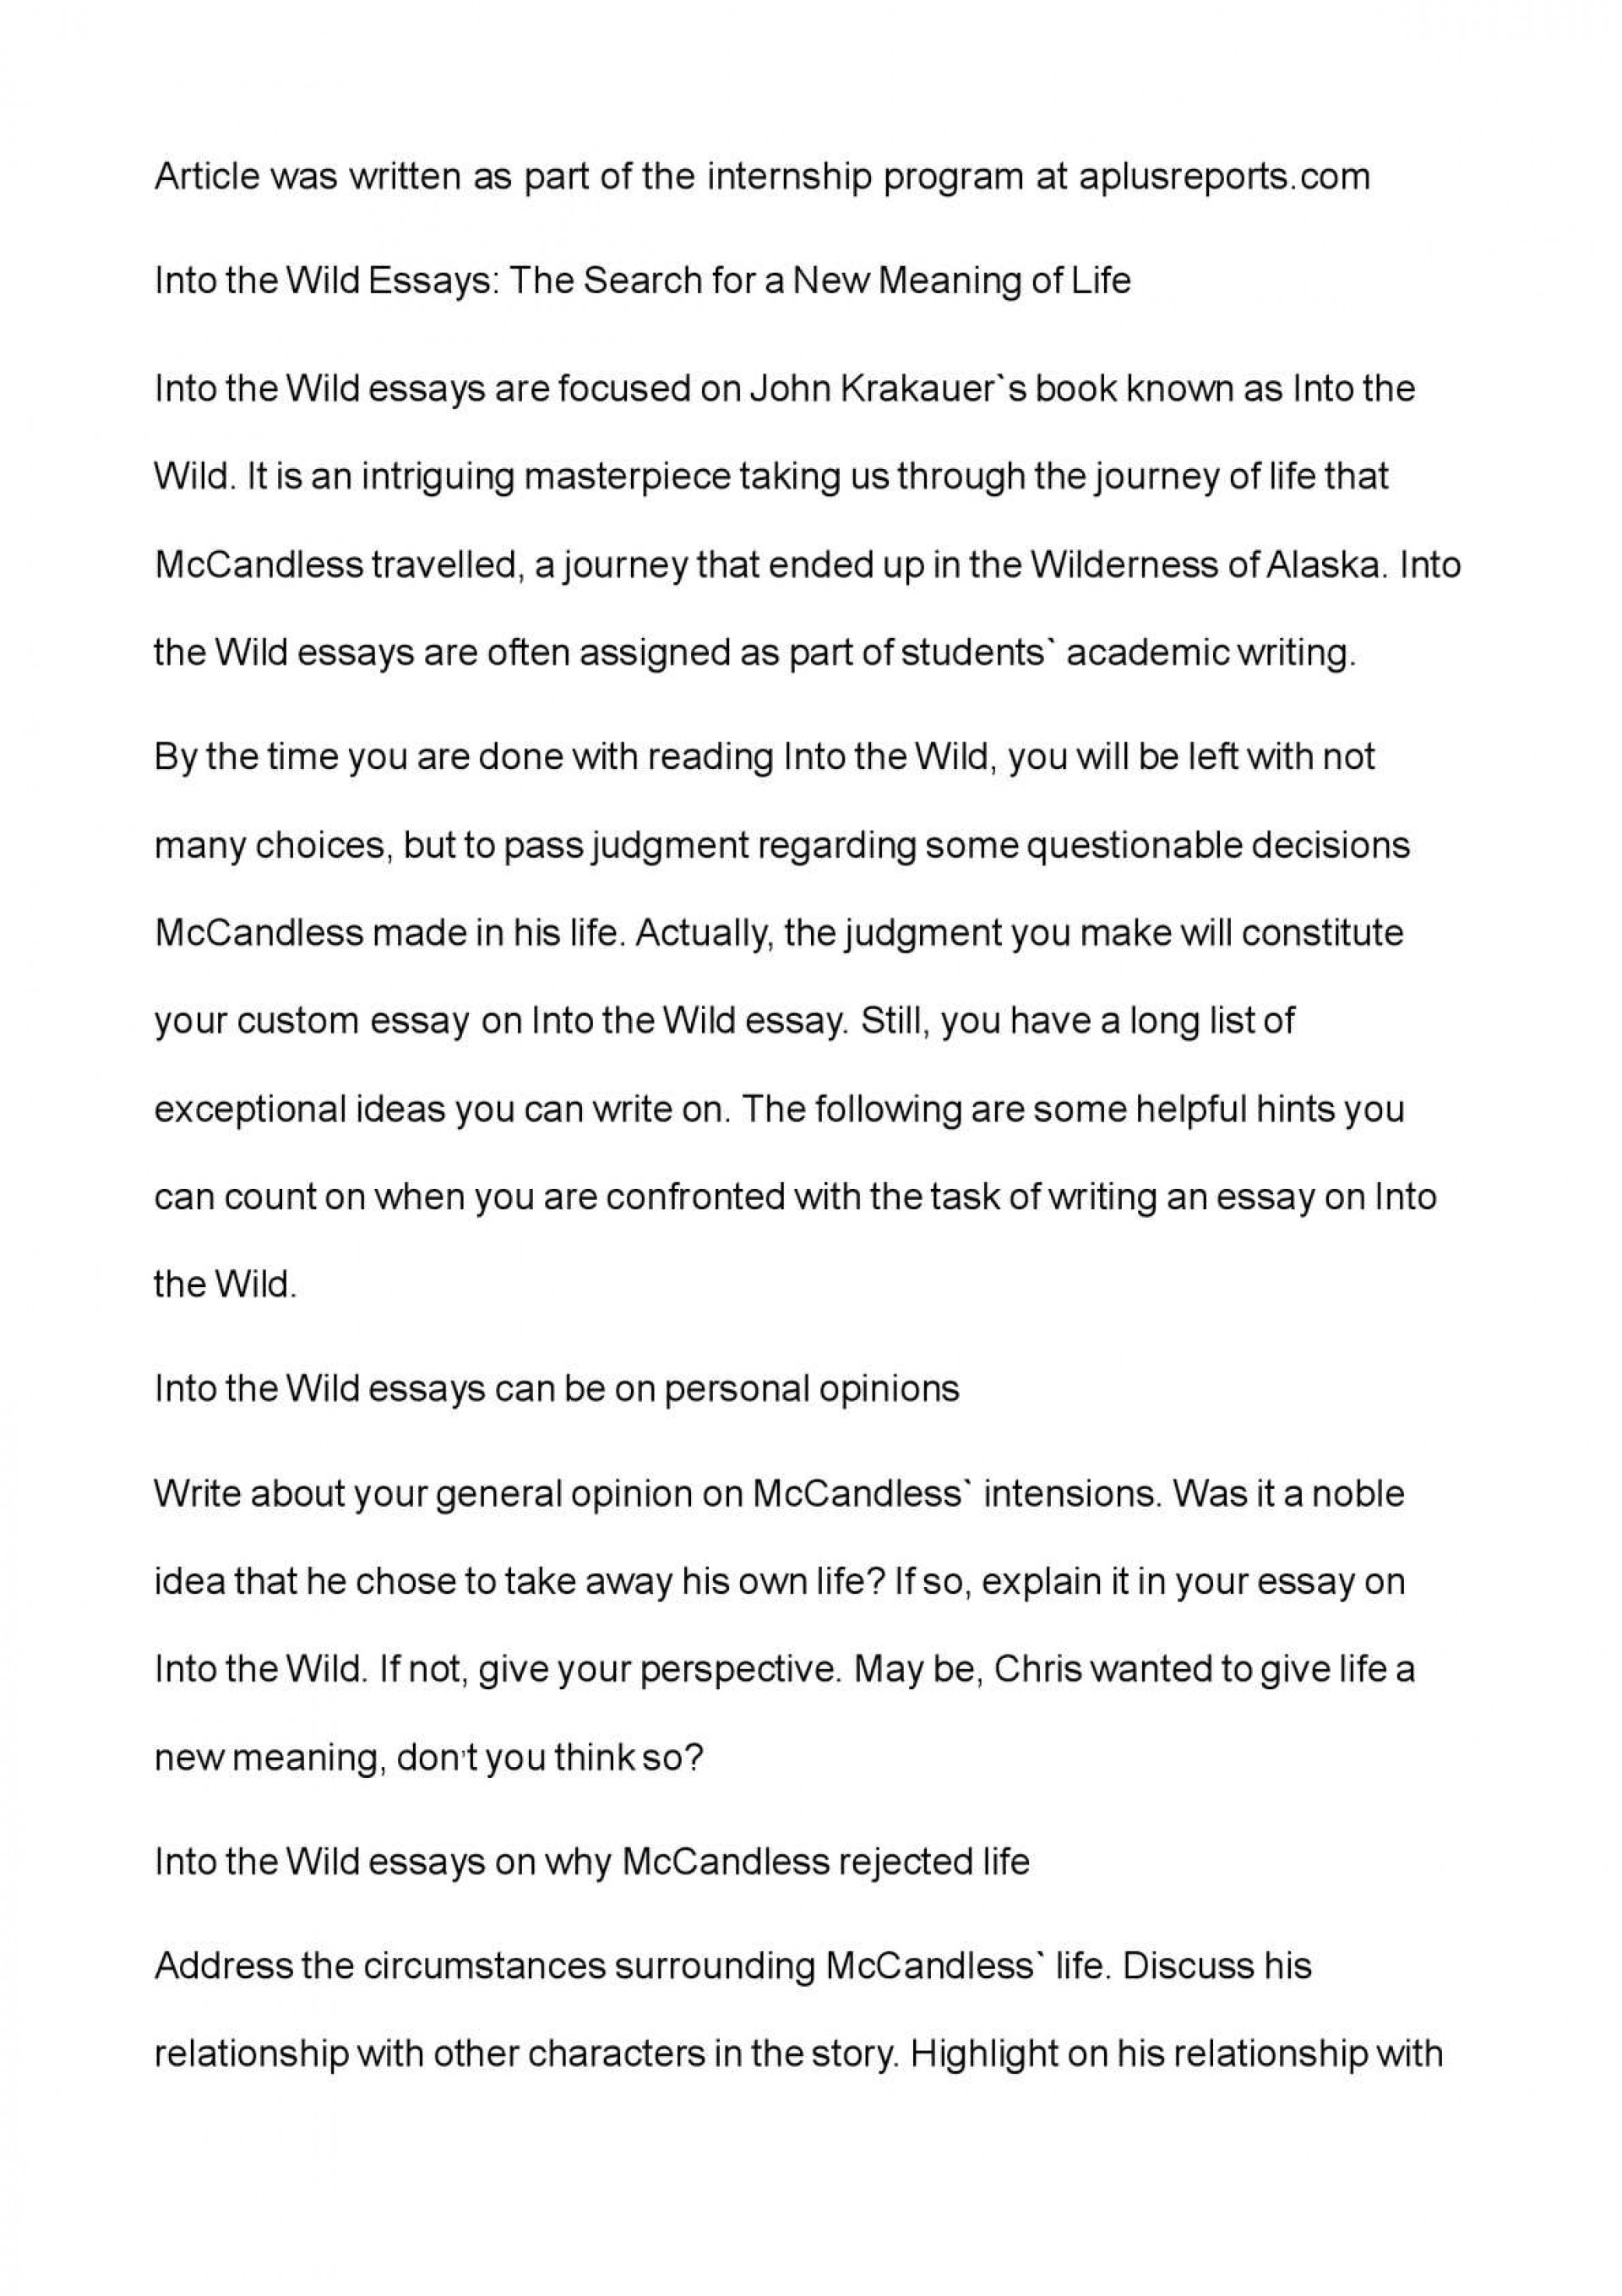 003 Into The Wild Essay Example Impressive Writing Prompts Titles Discussion Questions Chapter 2 1920